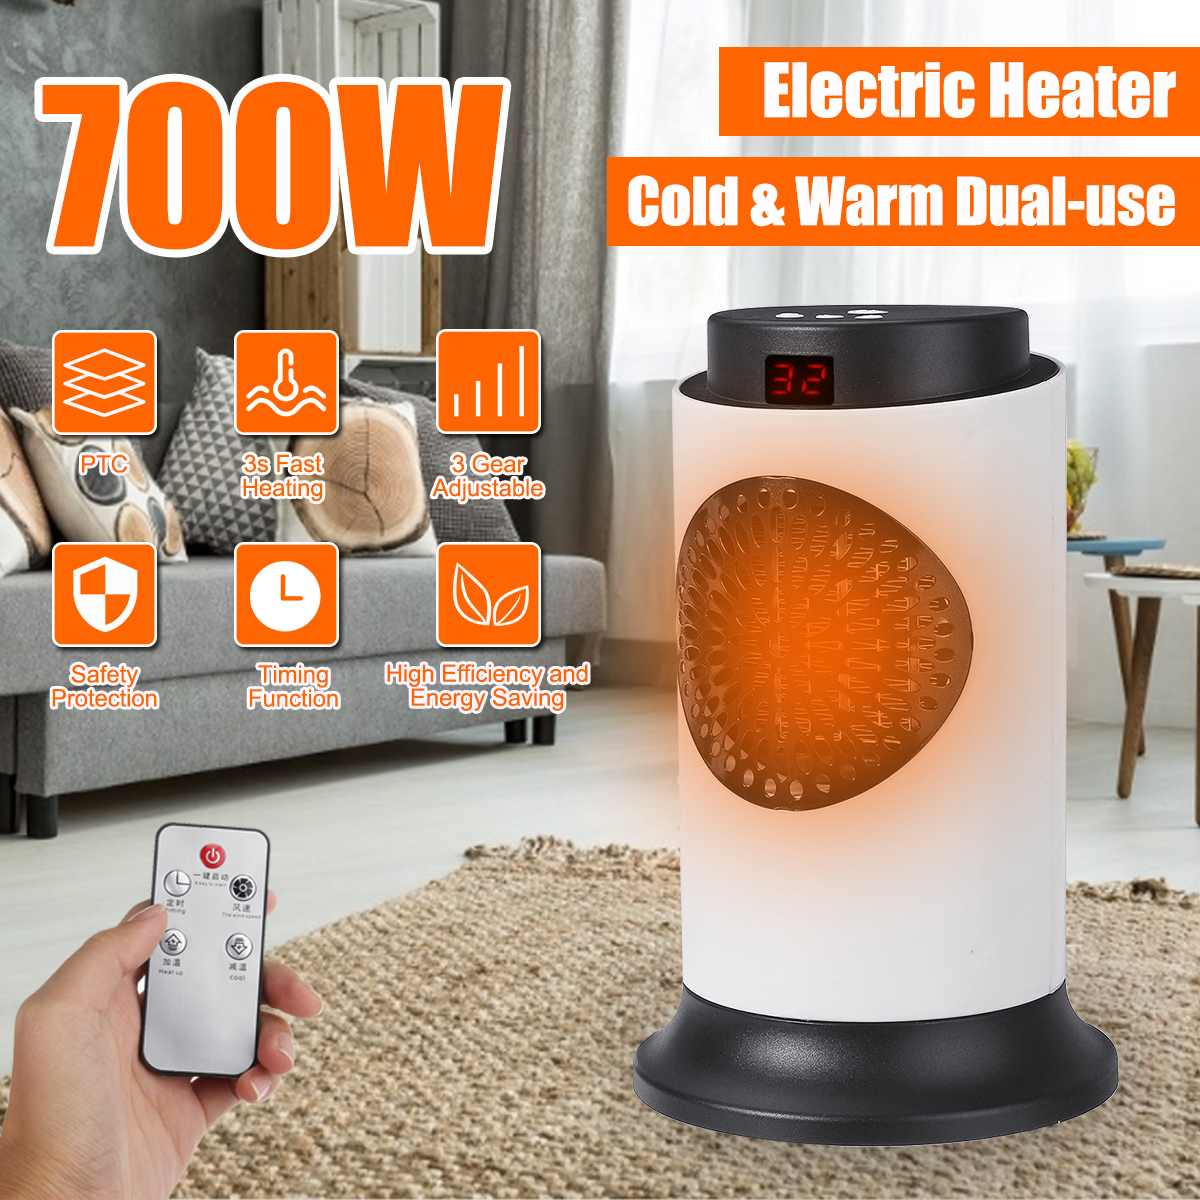 220V 50Hz 700W Power Electric Heater Ceramic Heating Electric Warmer Heater Room Heaters Warm Air Fan Heater